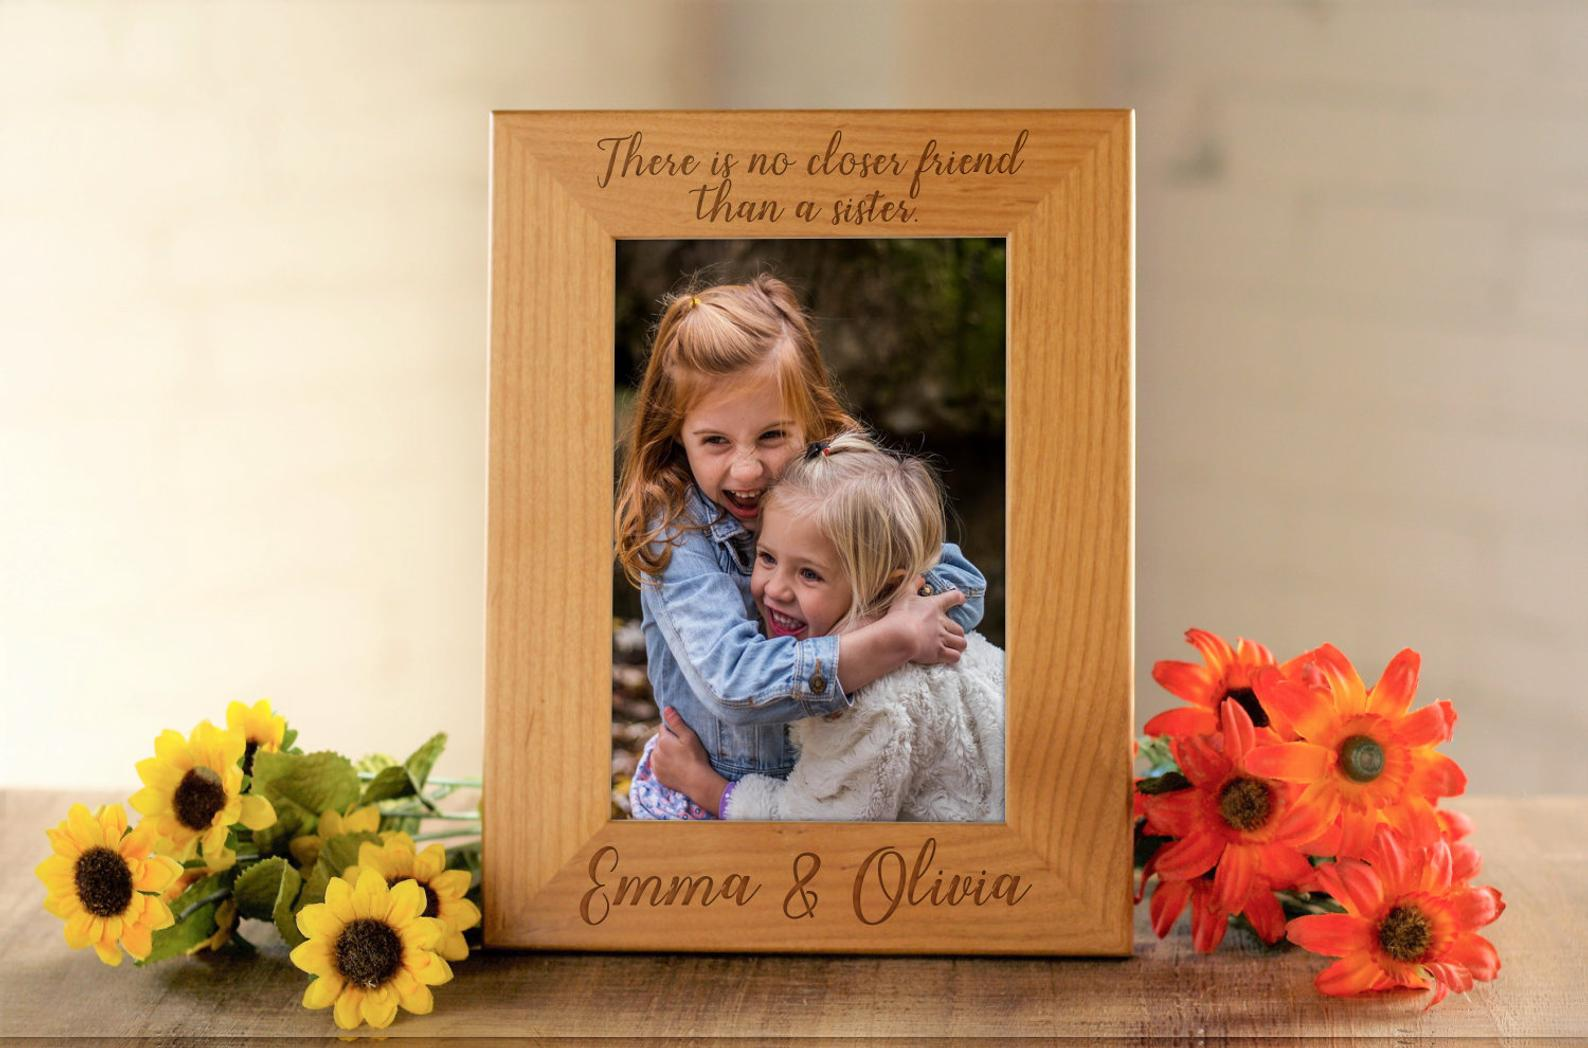 picture frame personalized bridesmaid proposal gift memories image wood wedding gift